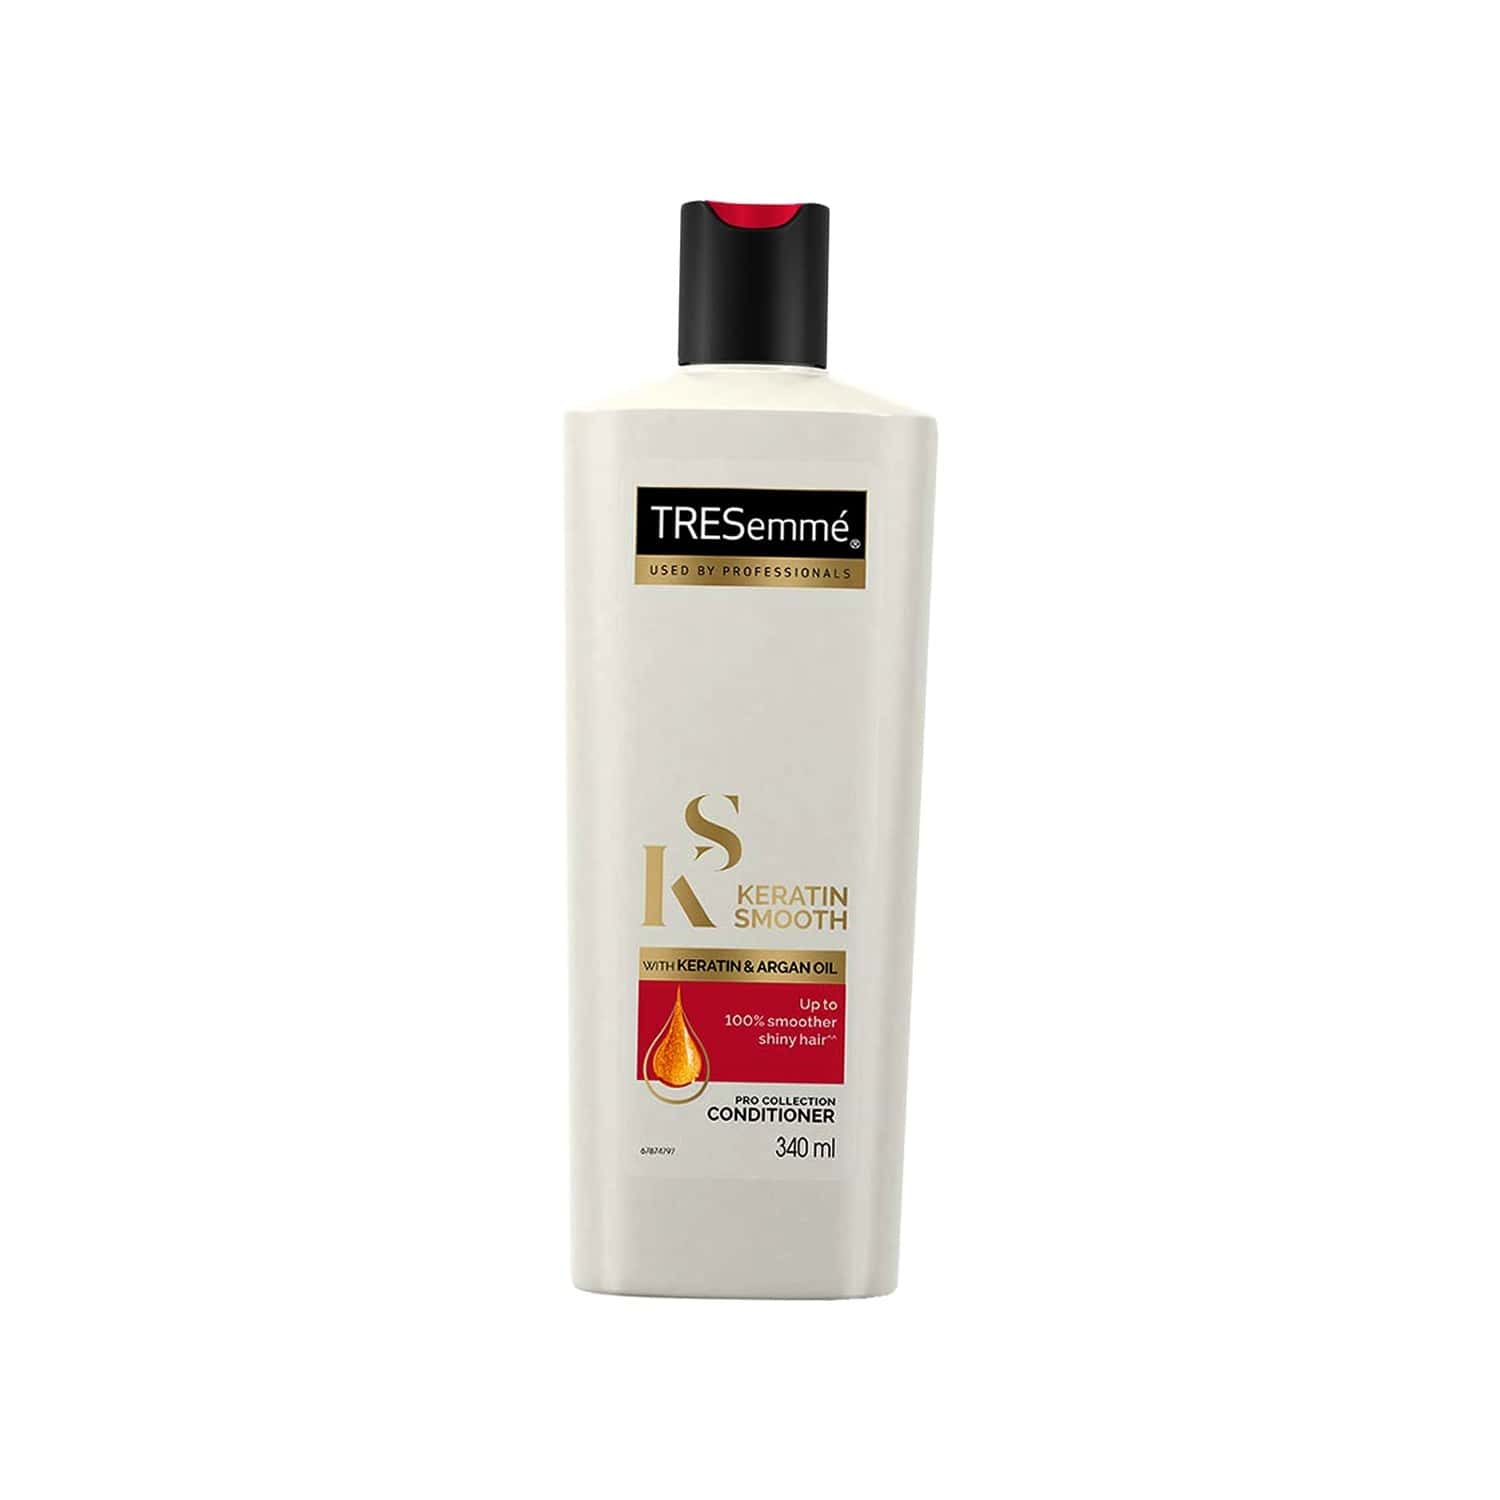 Tresemme Keratin Smooth Conditioner-340 Ml